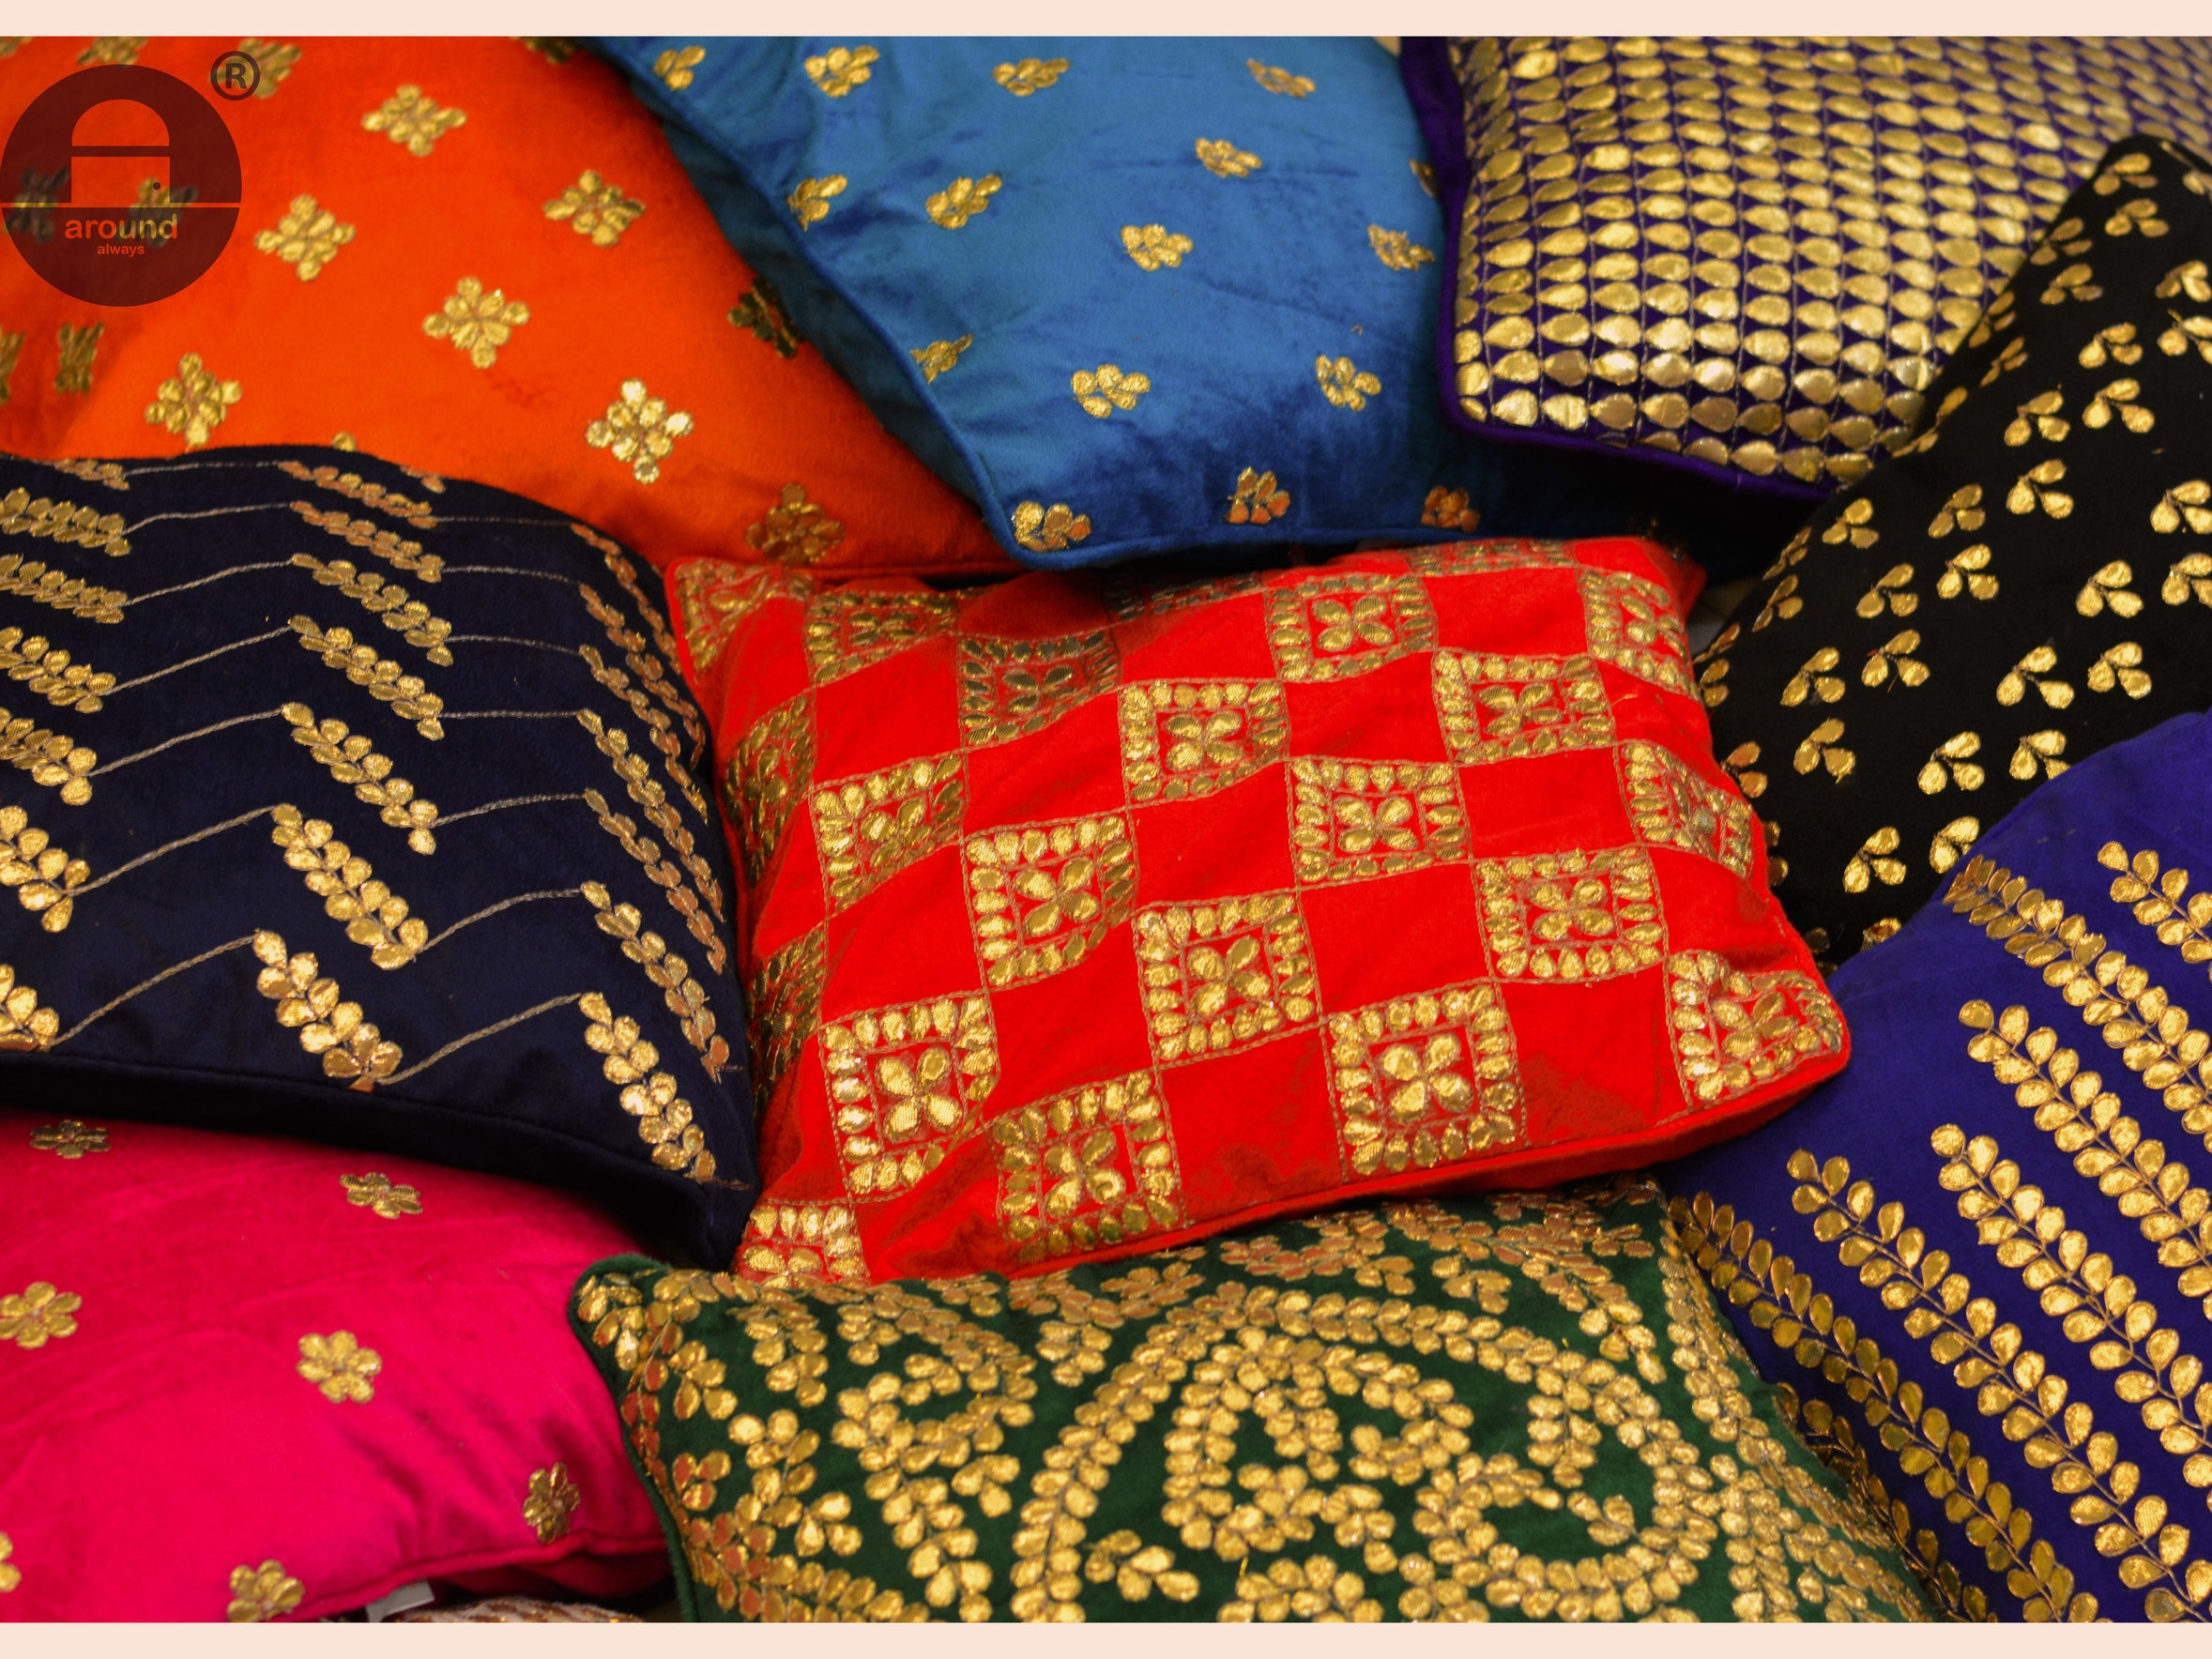 Patti - Embroidered with utmost care using age told Gota Pati technique from Rajsthan, India, these cushions draw inspiration from mother nature,